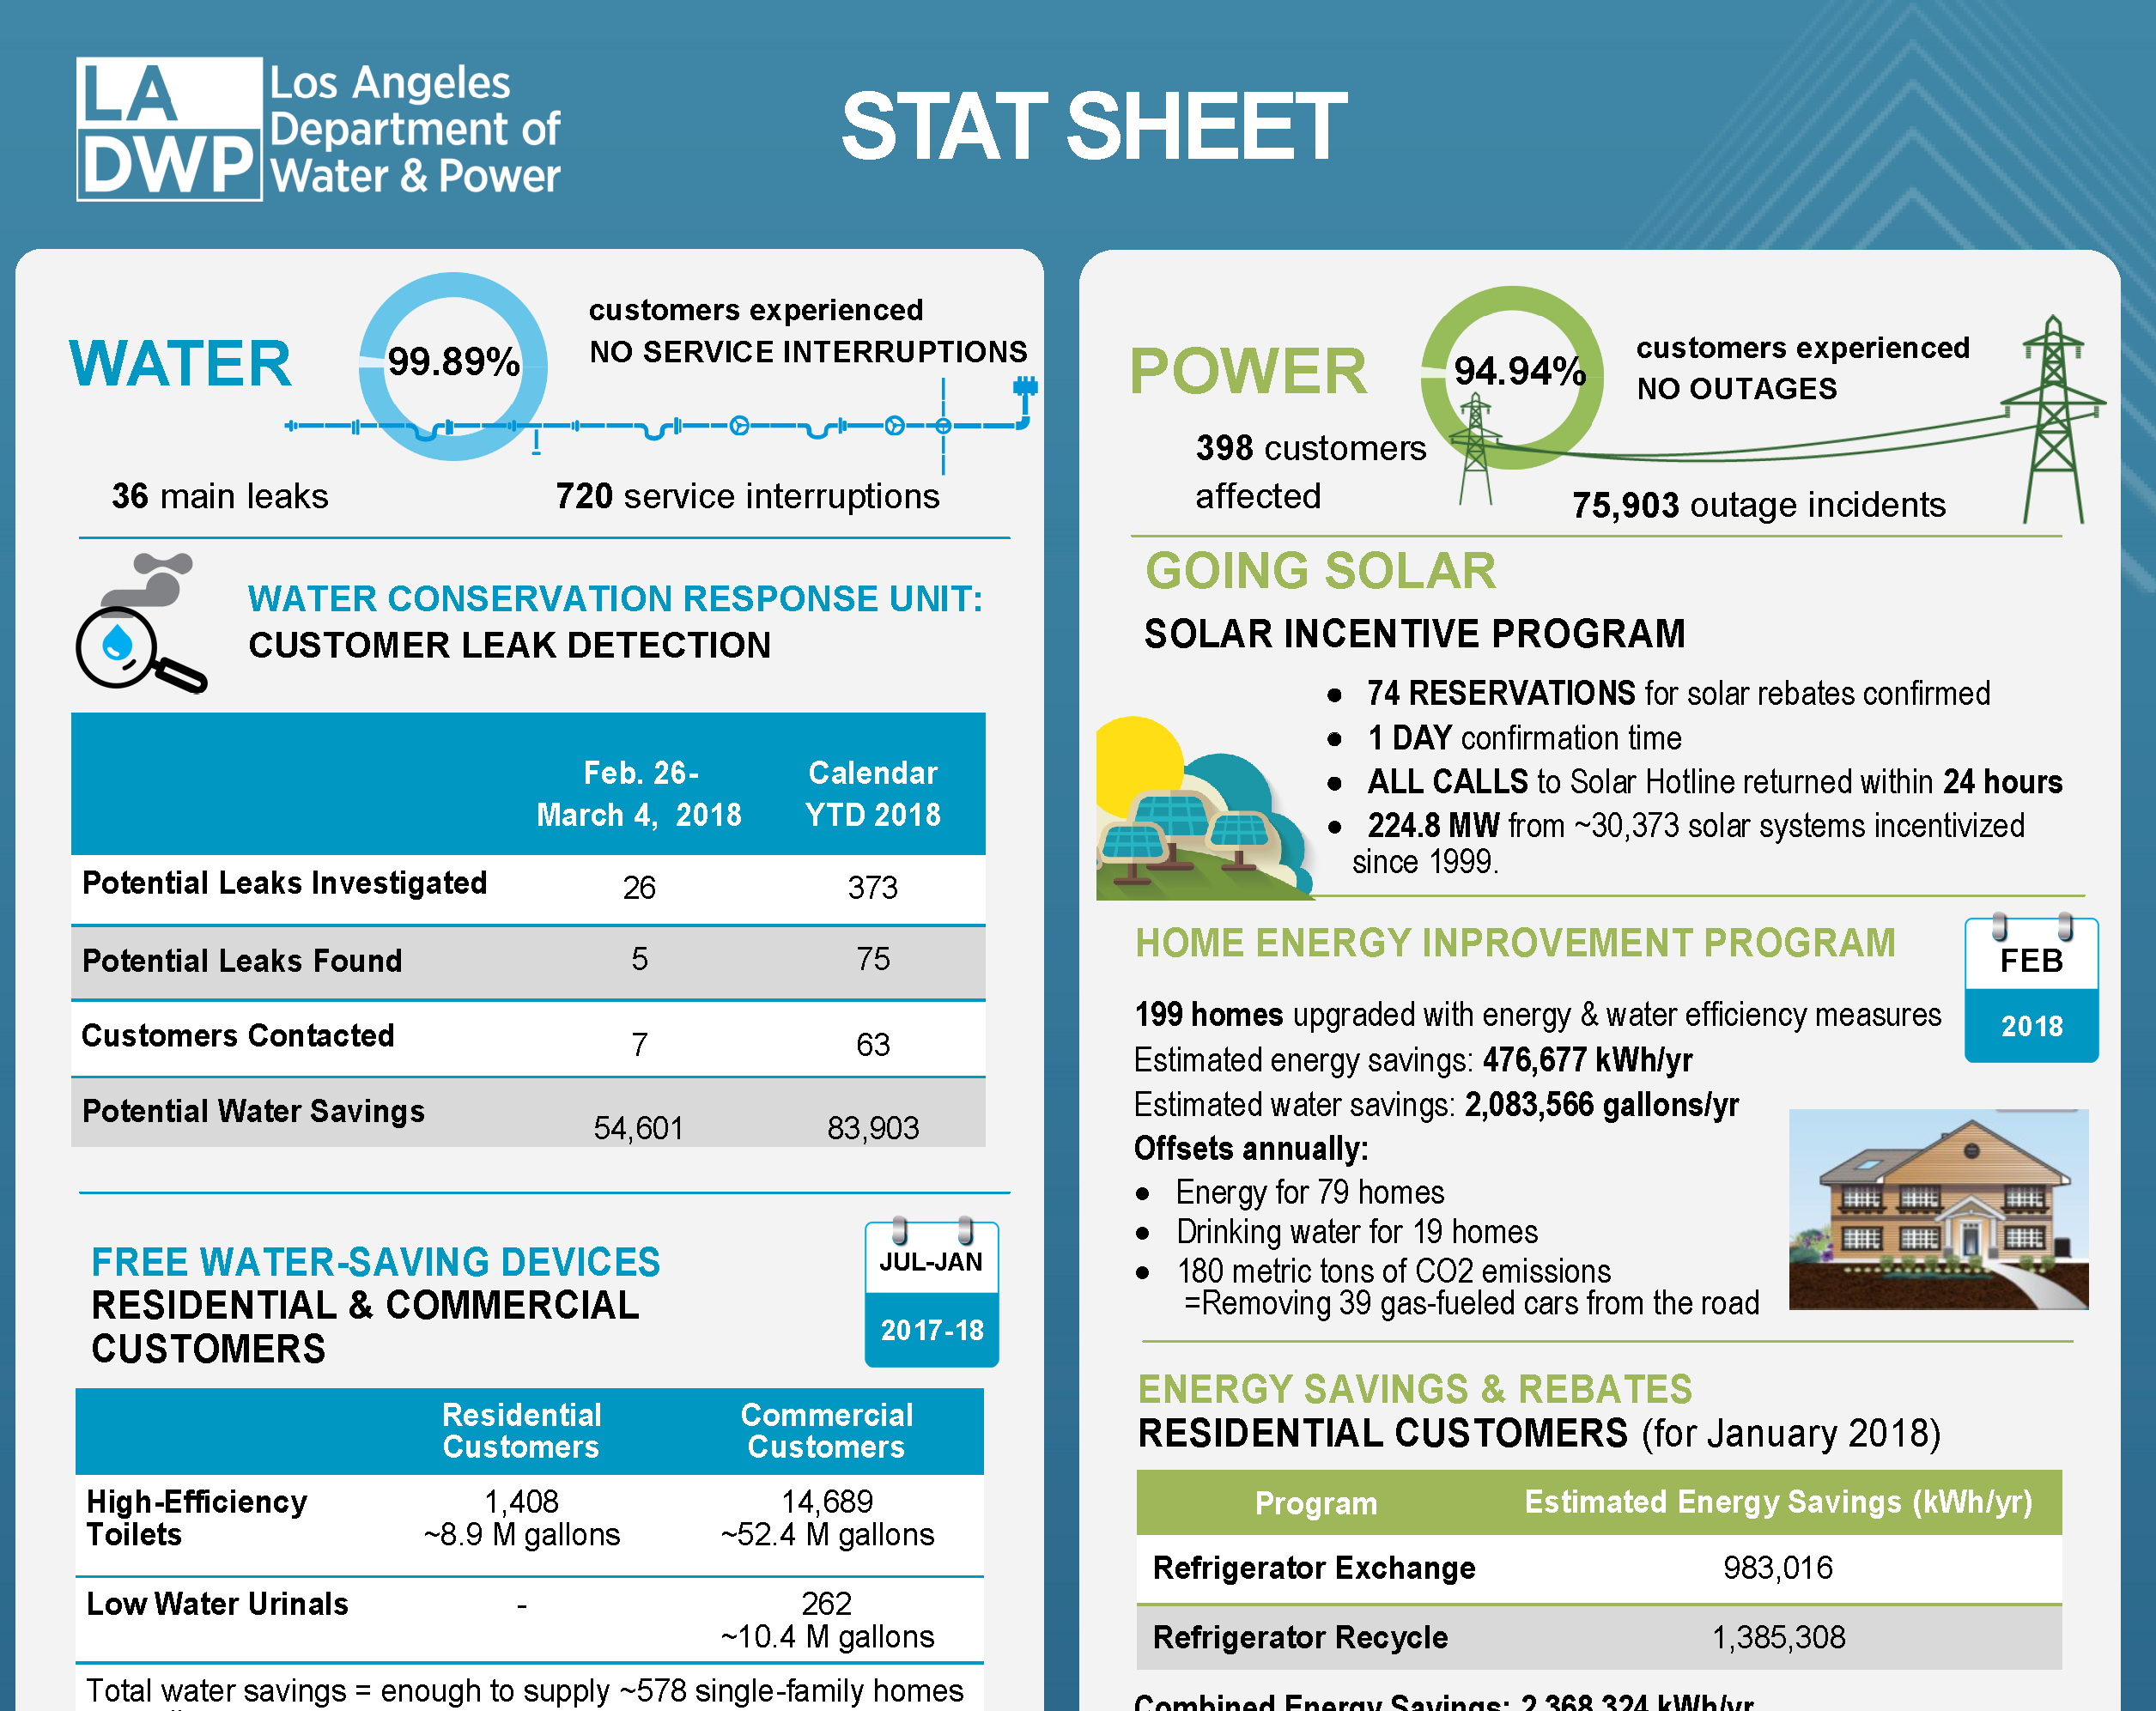 """LADWP """"Stat Sheet"""" infographic highlighting water and power achievements for the week."""